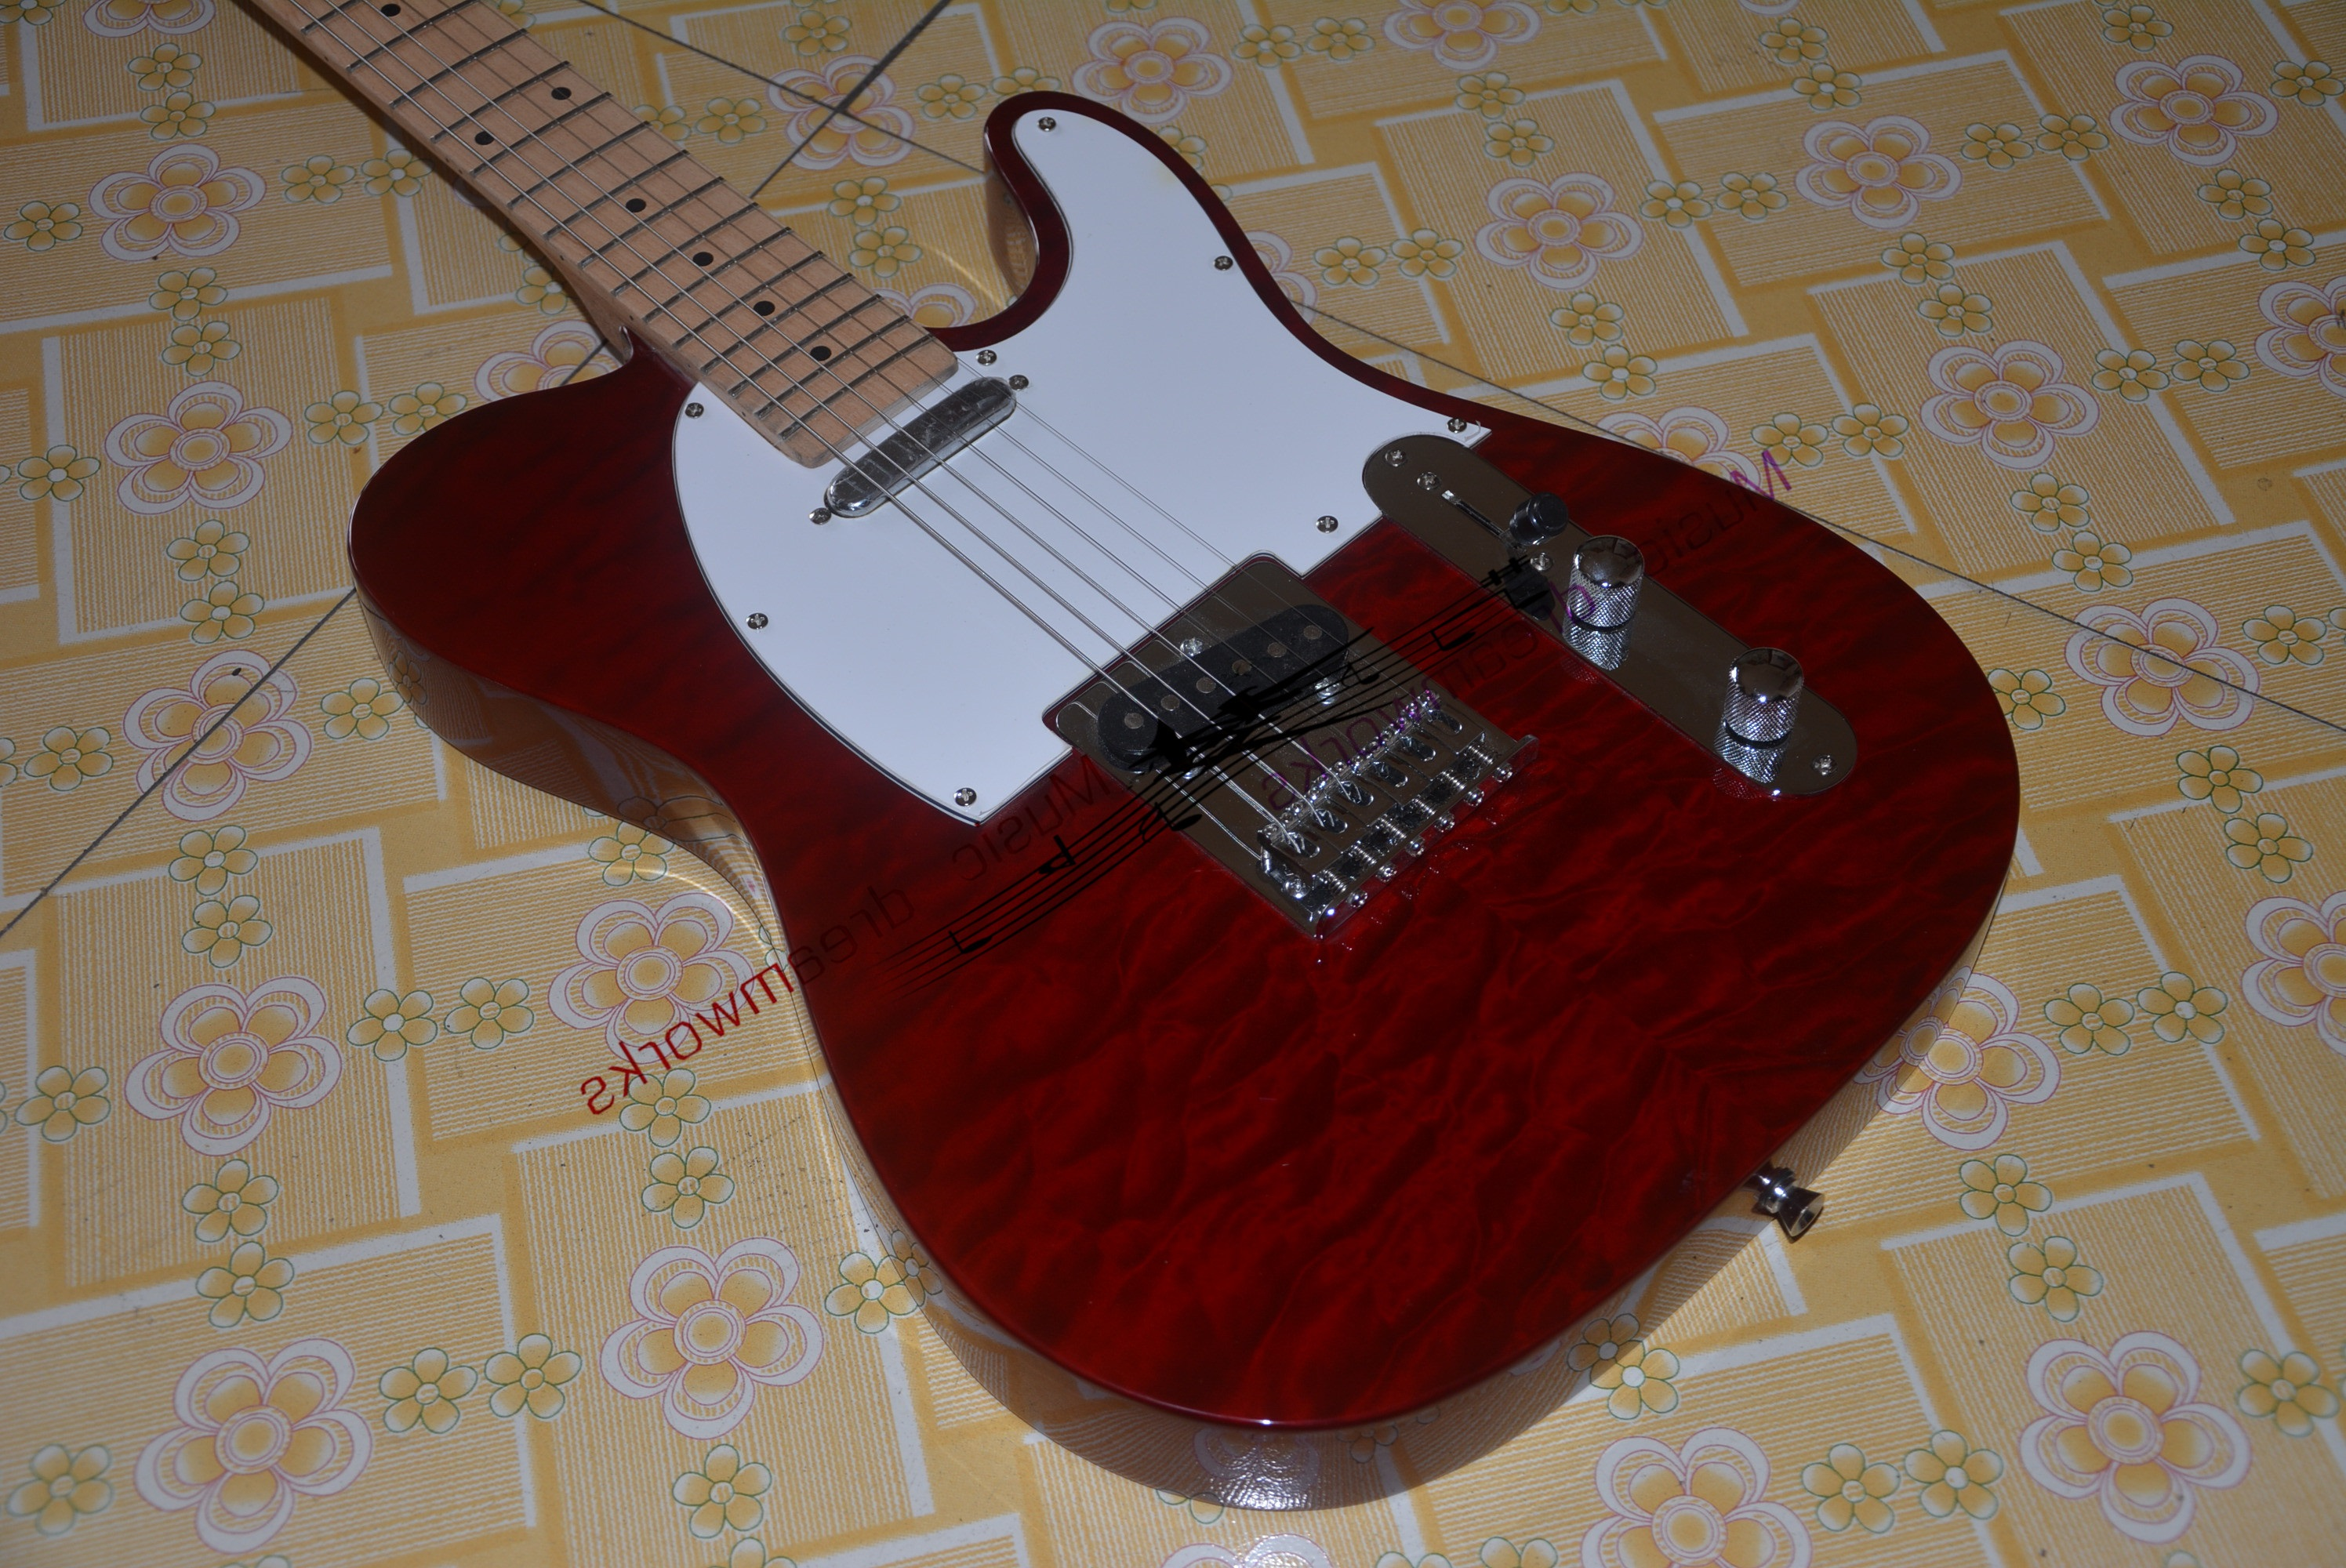 China OEM firehawk guitar Left hand and right hand high quality beautiful T l Electric Guitar EMS Free shipping image